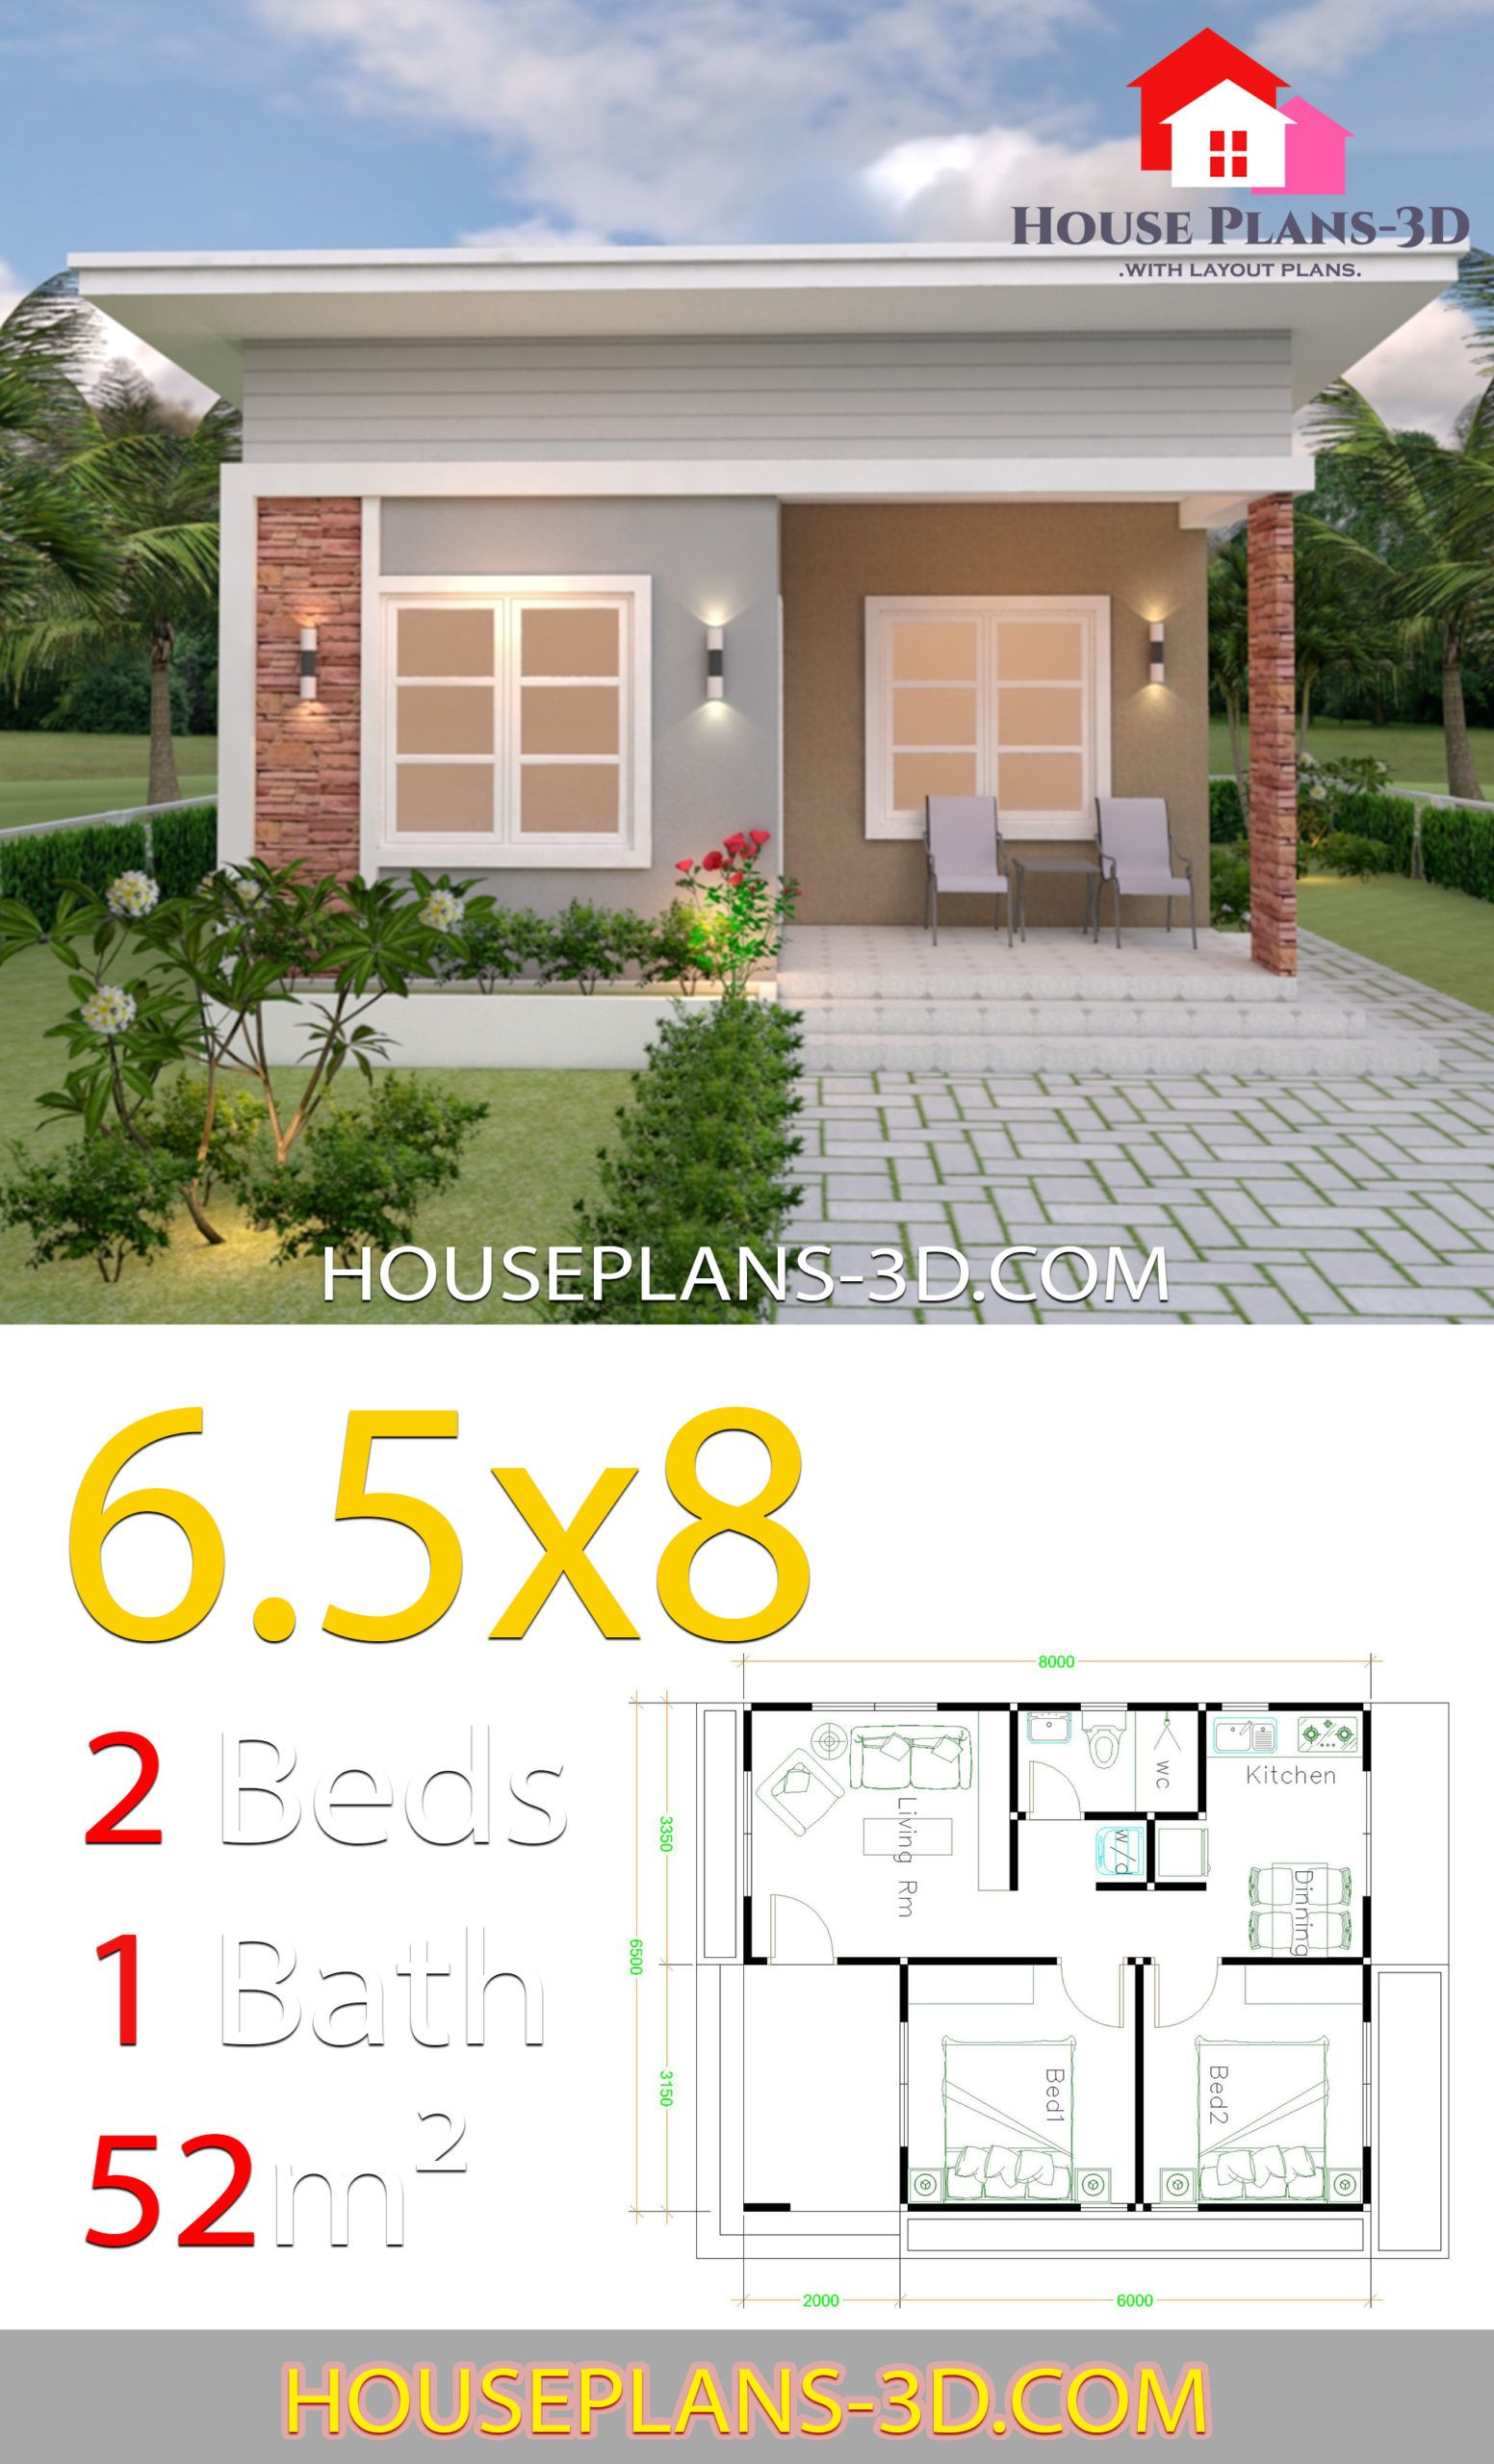 House Design Plans 6 5x8 With 2 Bedrooms Shed Roof House Plans 3d Small House Design Simple House Design Small House Plans